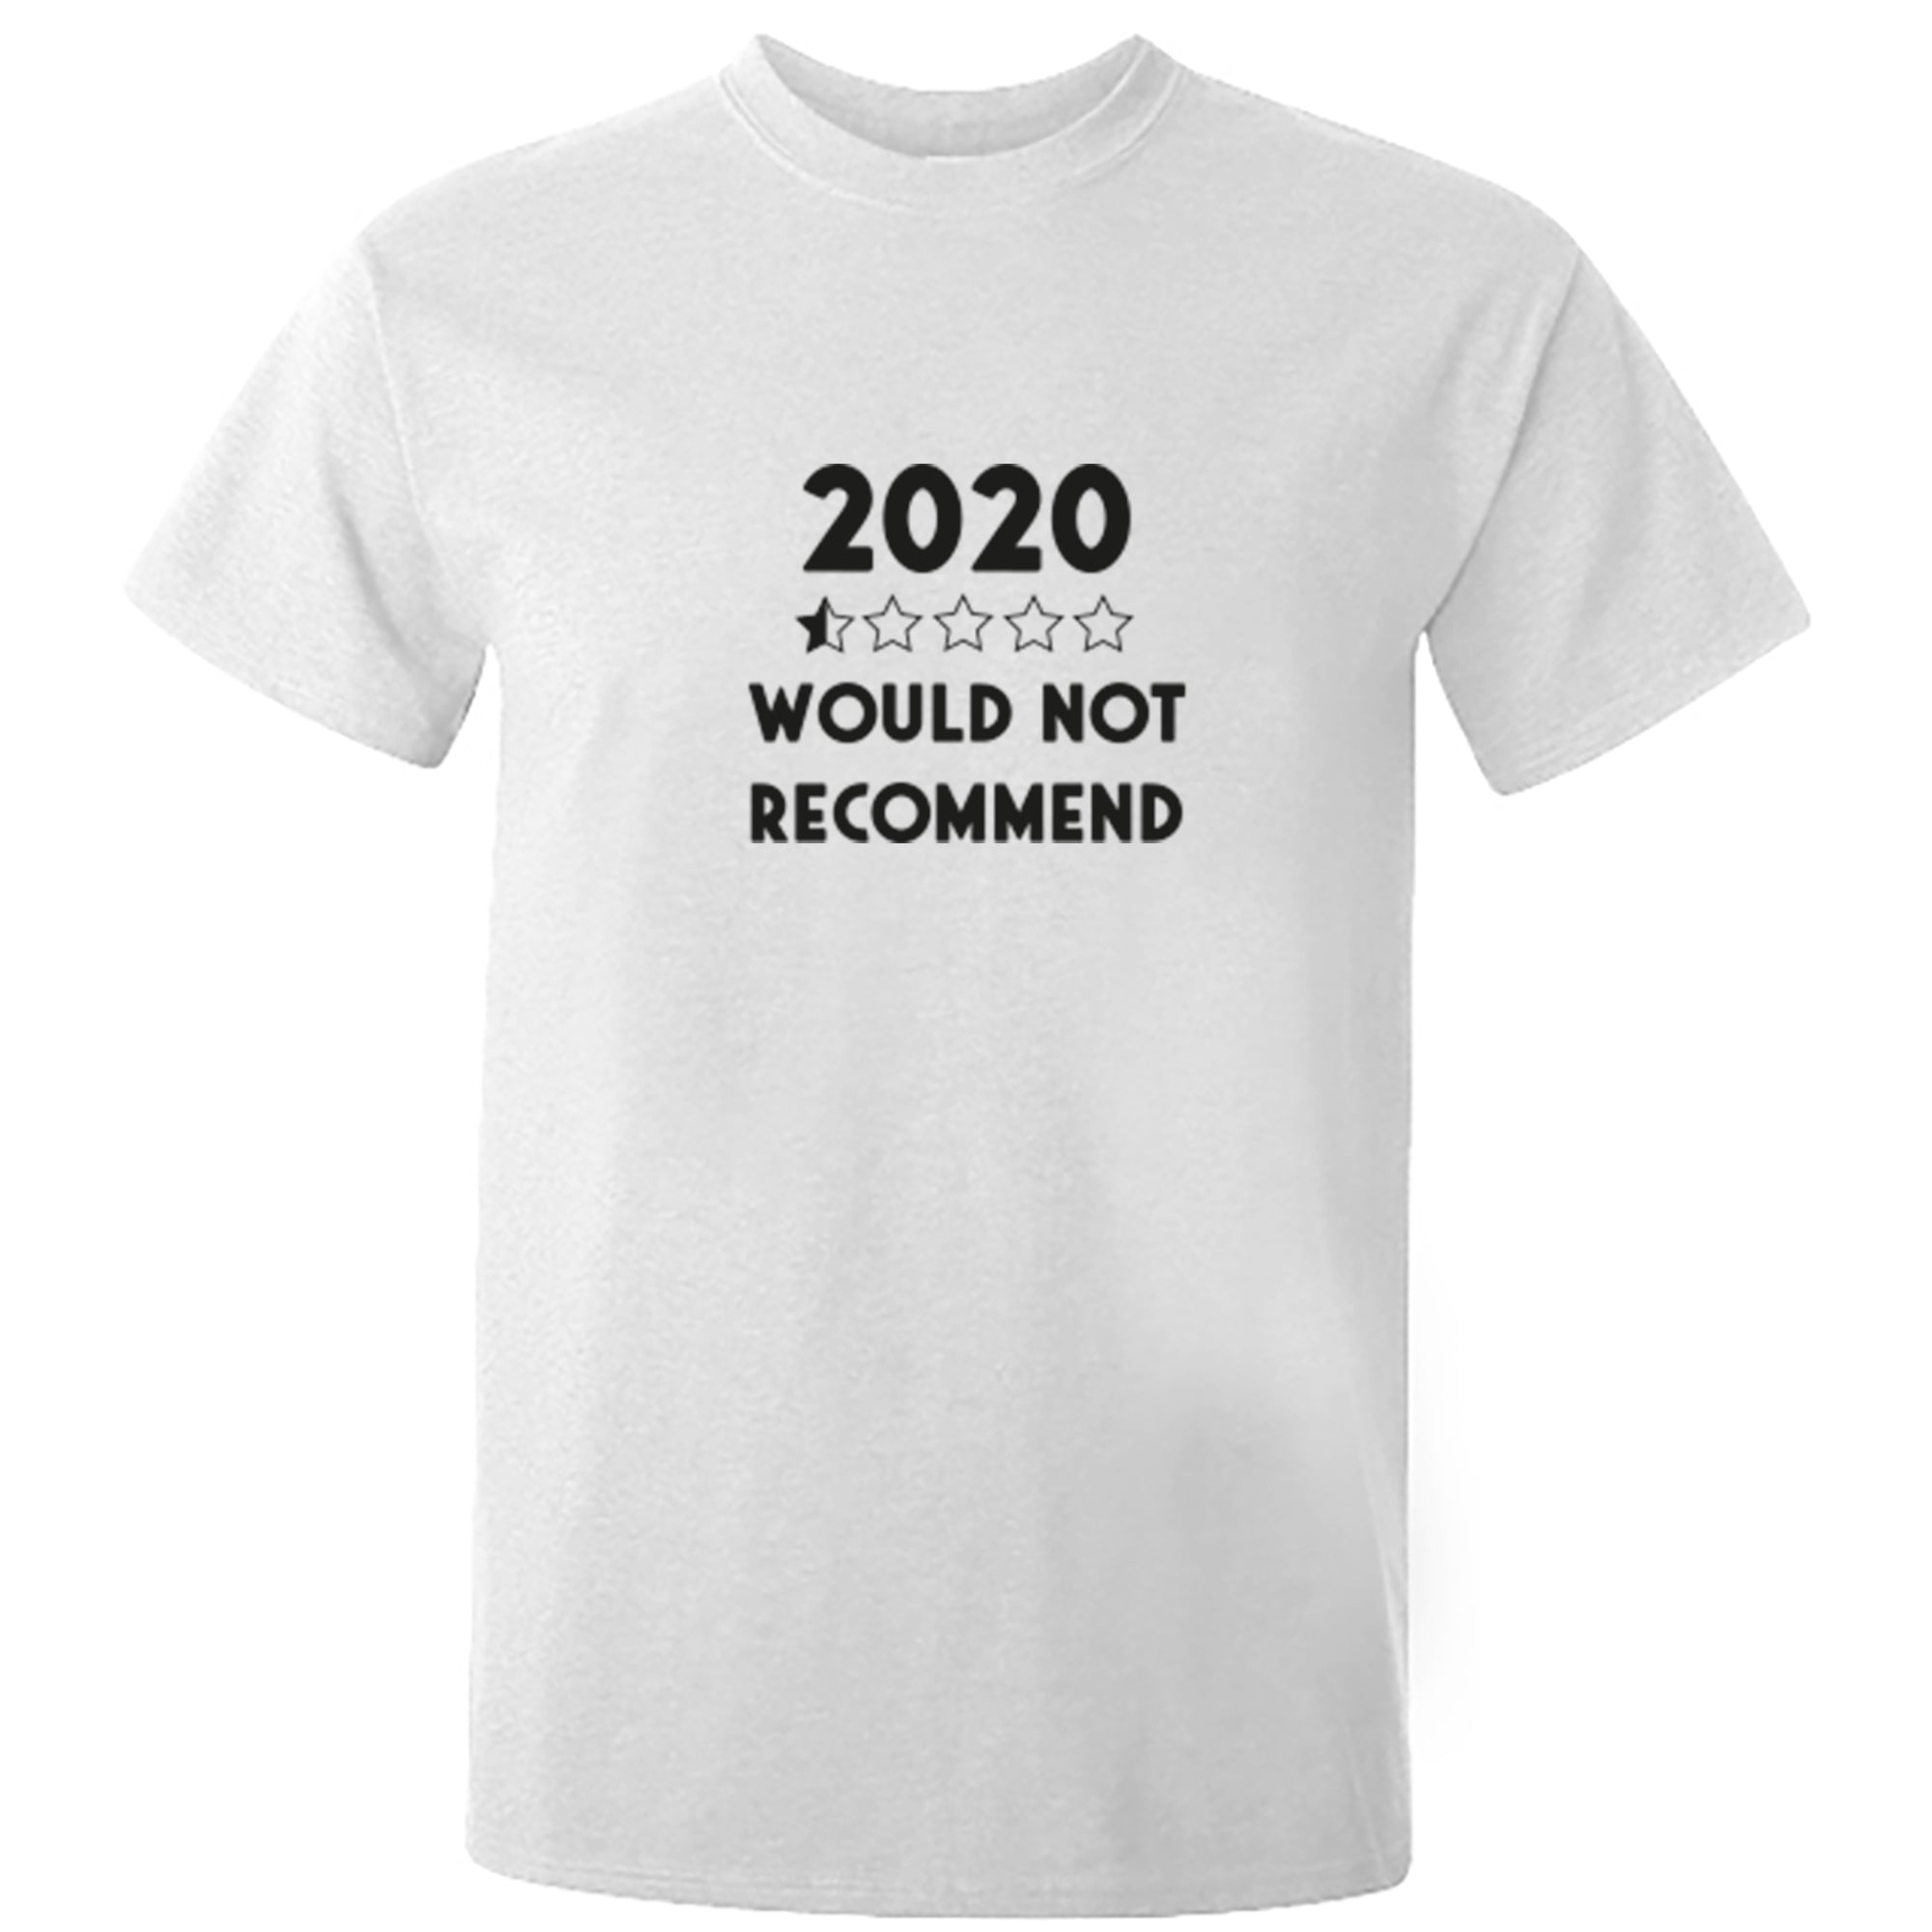 2020 Would Not Recommend Unisex Fit T-Shirt S1124 - Illustrated Identity Ltd.